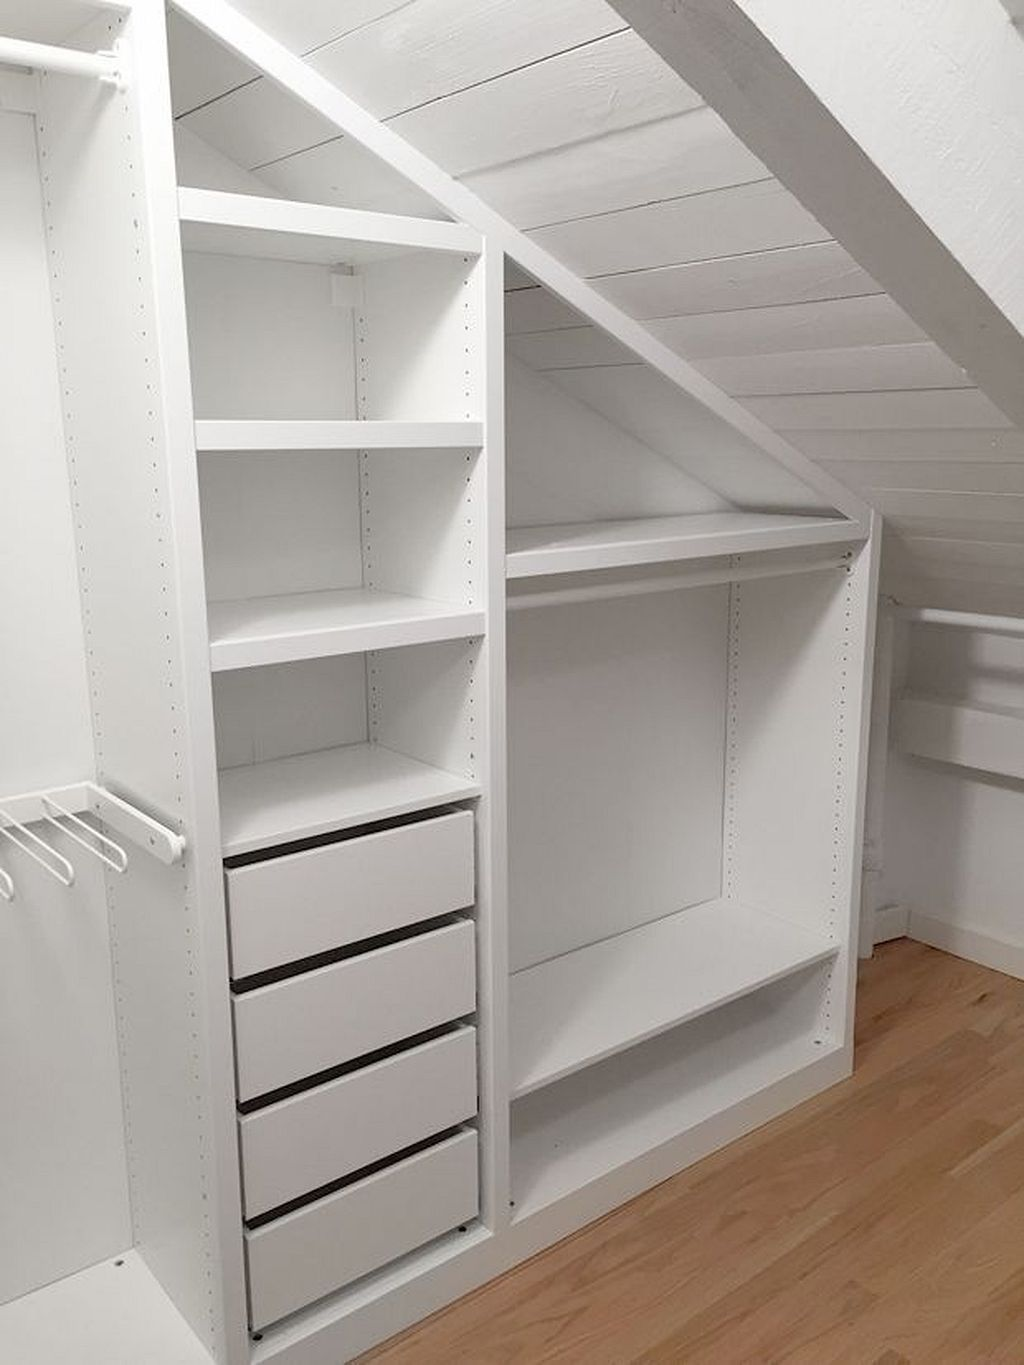 Create More Space In Your Homes With Ikea Pax Closet Dressing Sous Combles Amenagement Combles Chambre Dressing Mansarde